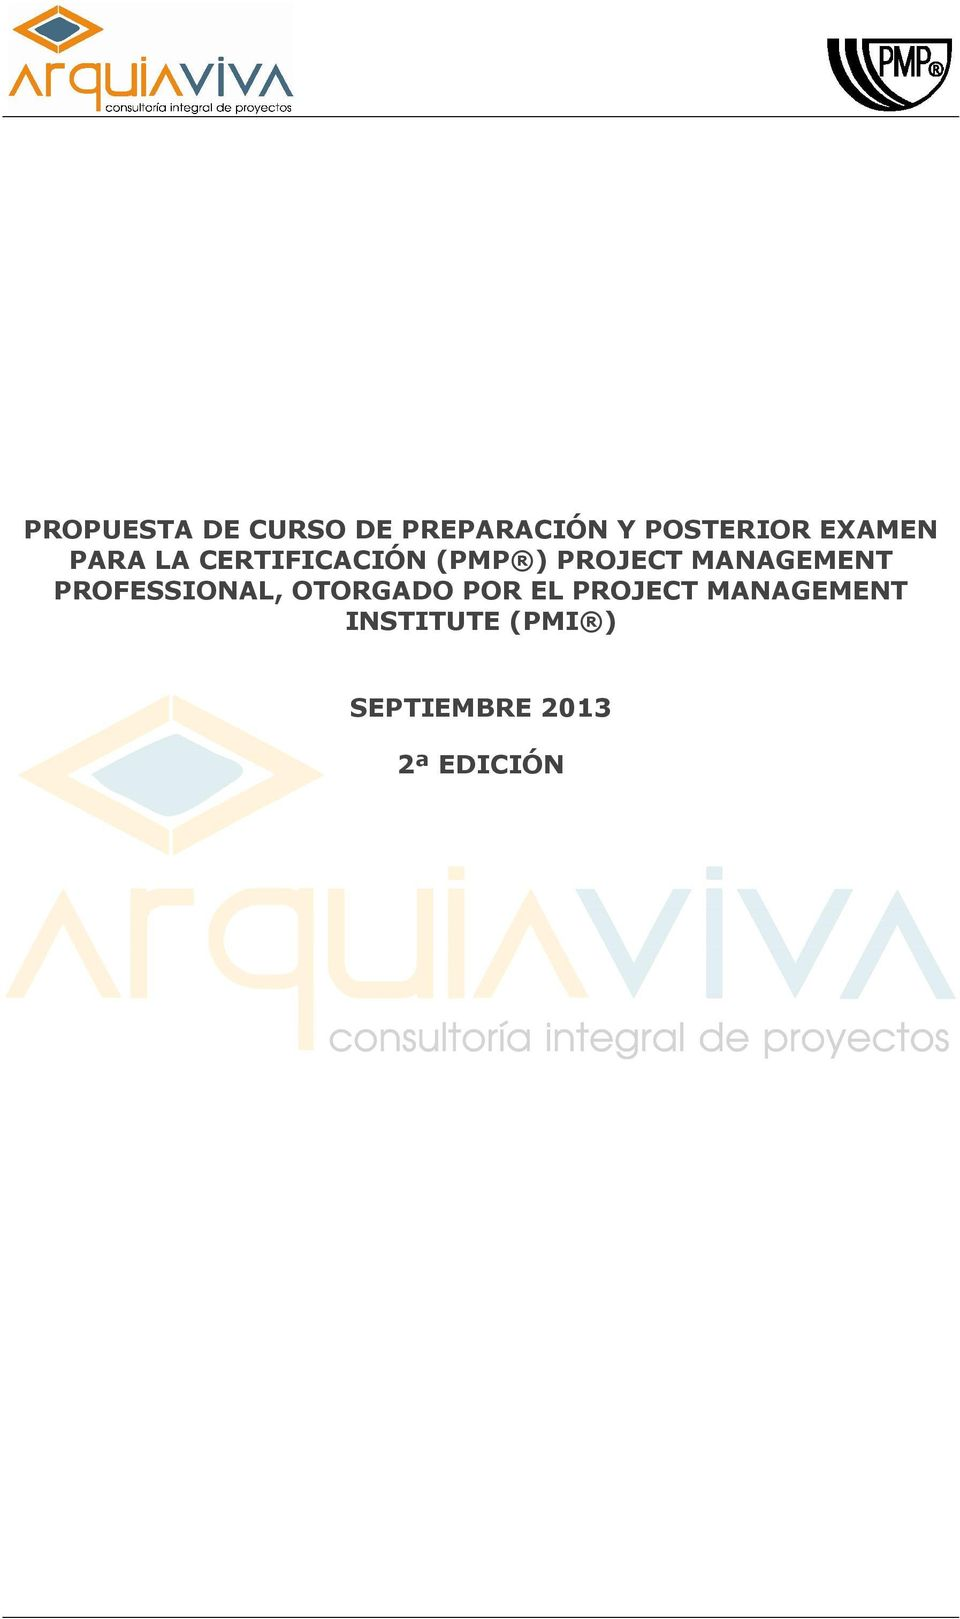 MANAGEMENT PROFESSIONAL, OTORGADO POR EL PROJECT